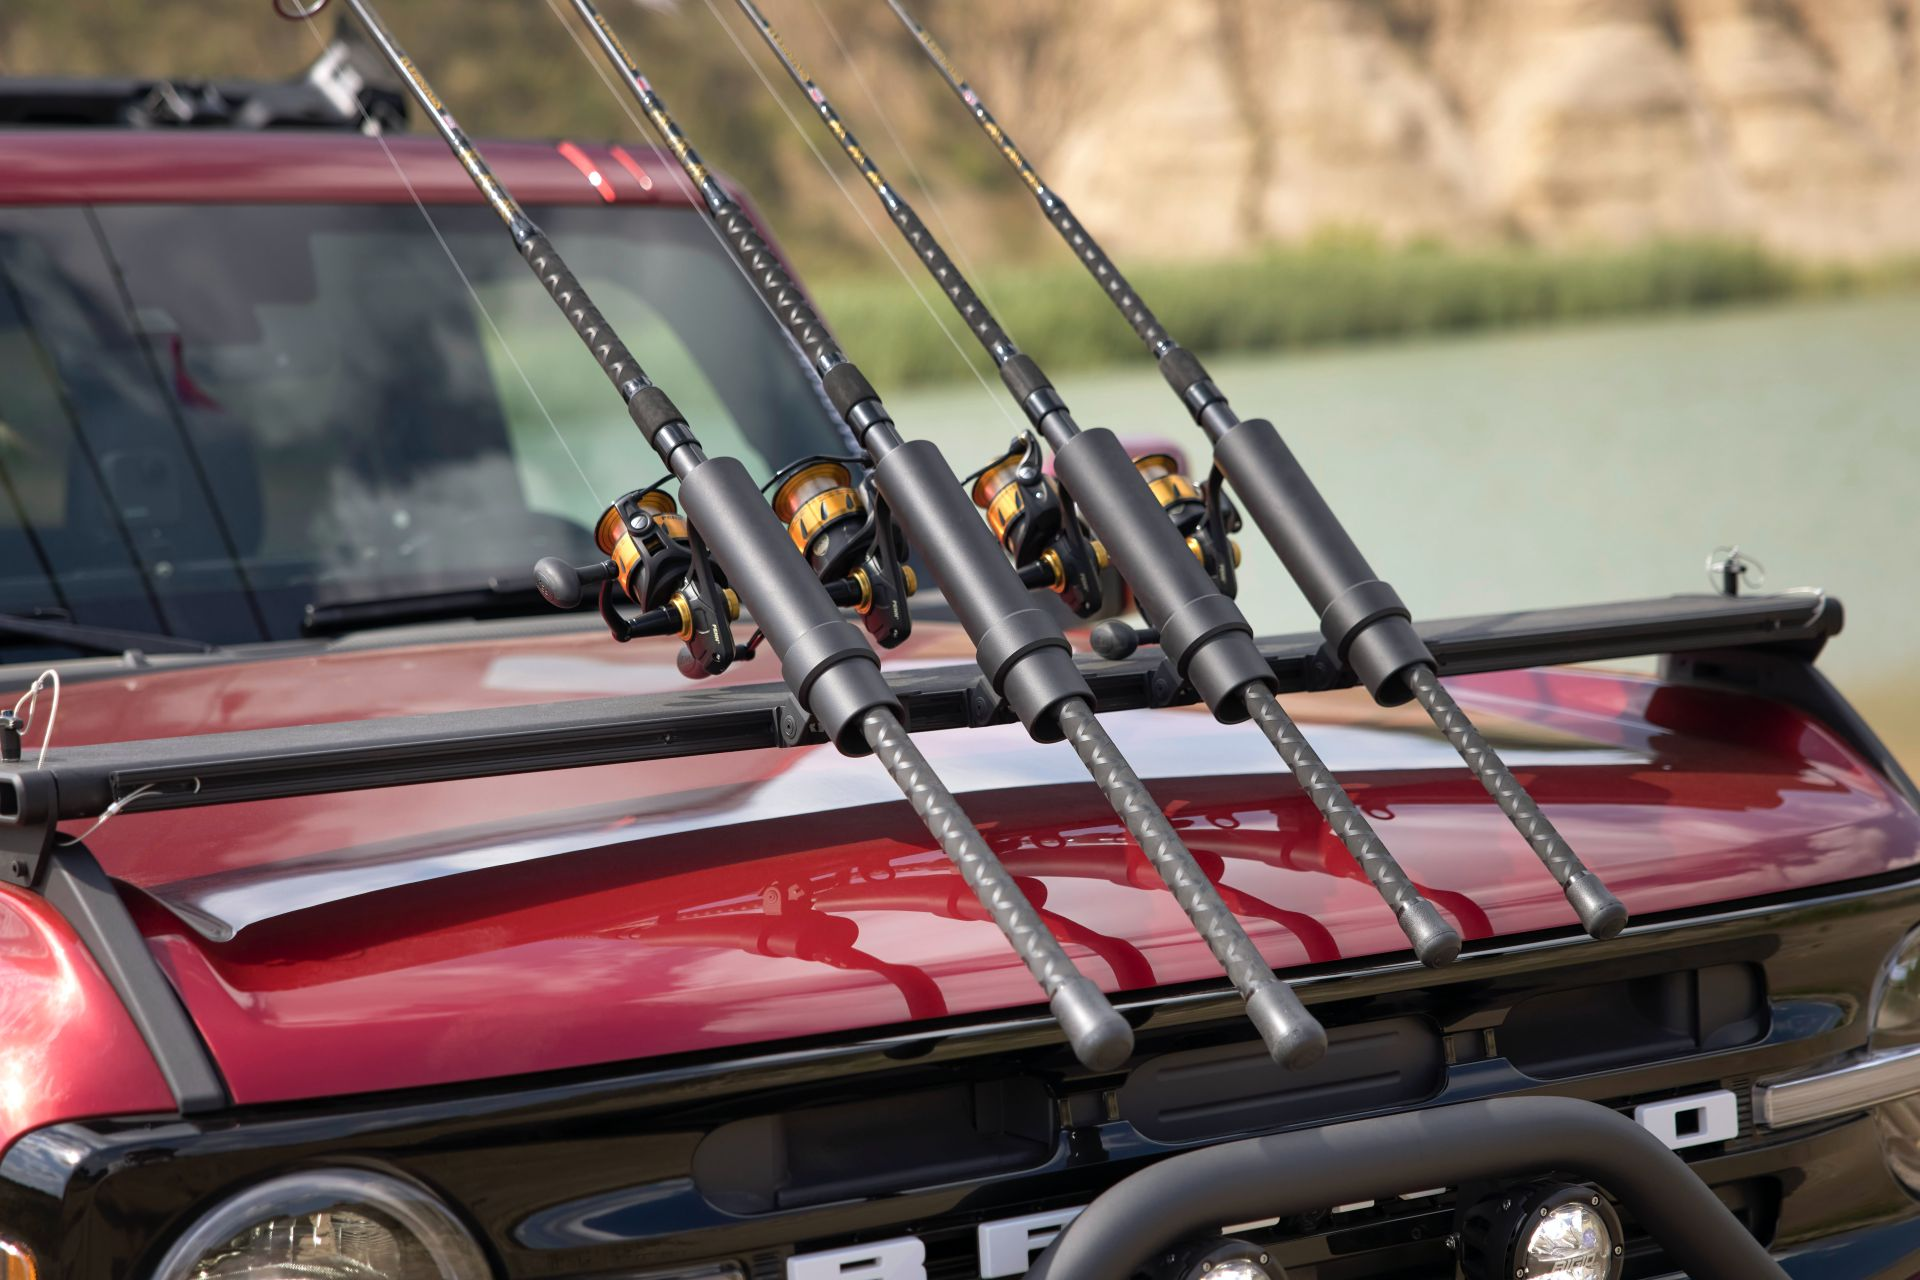 Ford-Bronco-4-Door-Outer-Banks-Fishing-Guide-Concept-3